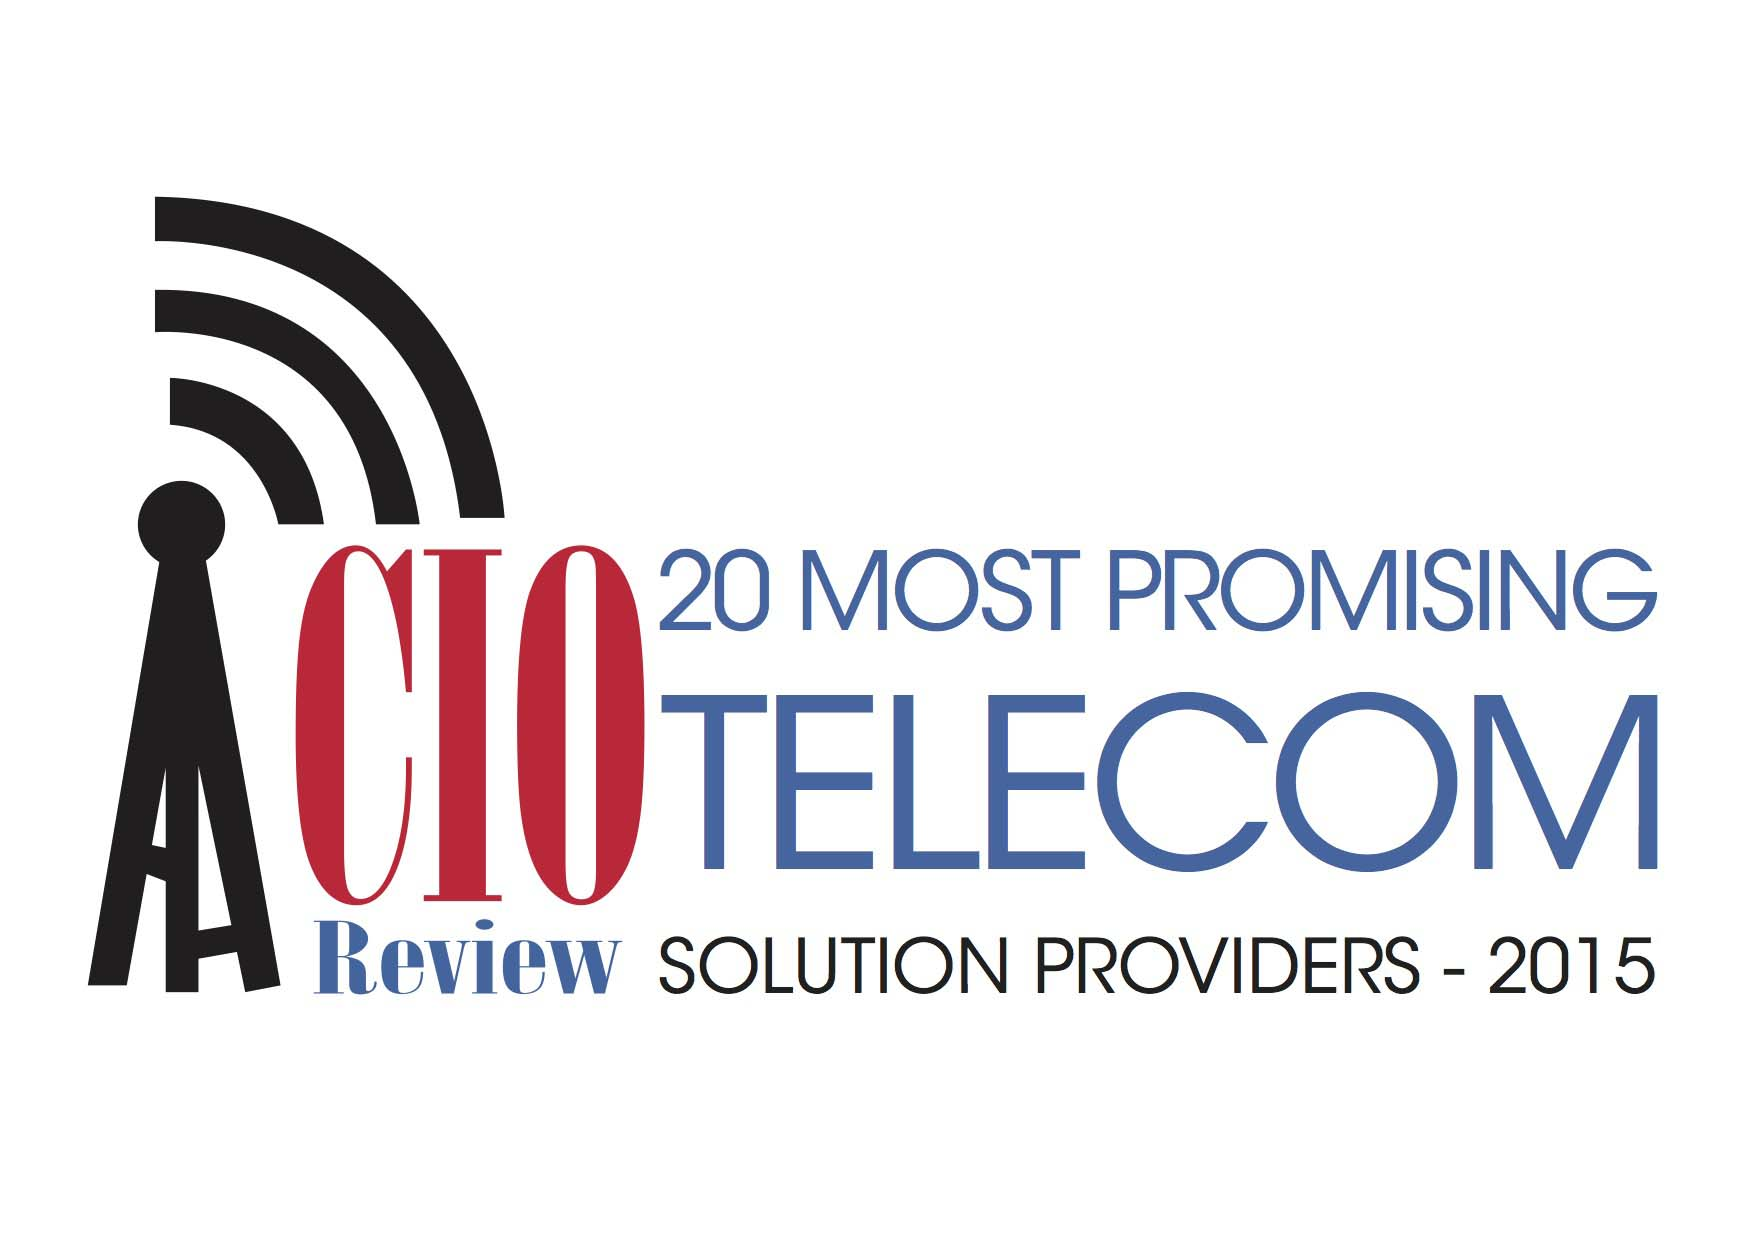 Sigma Software CIO Review 20 Most Promising Telecom Solution Providers 2015